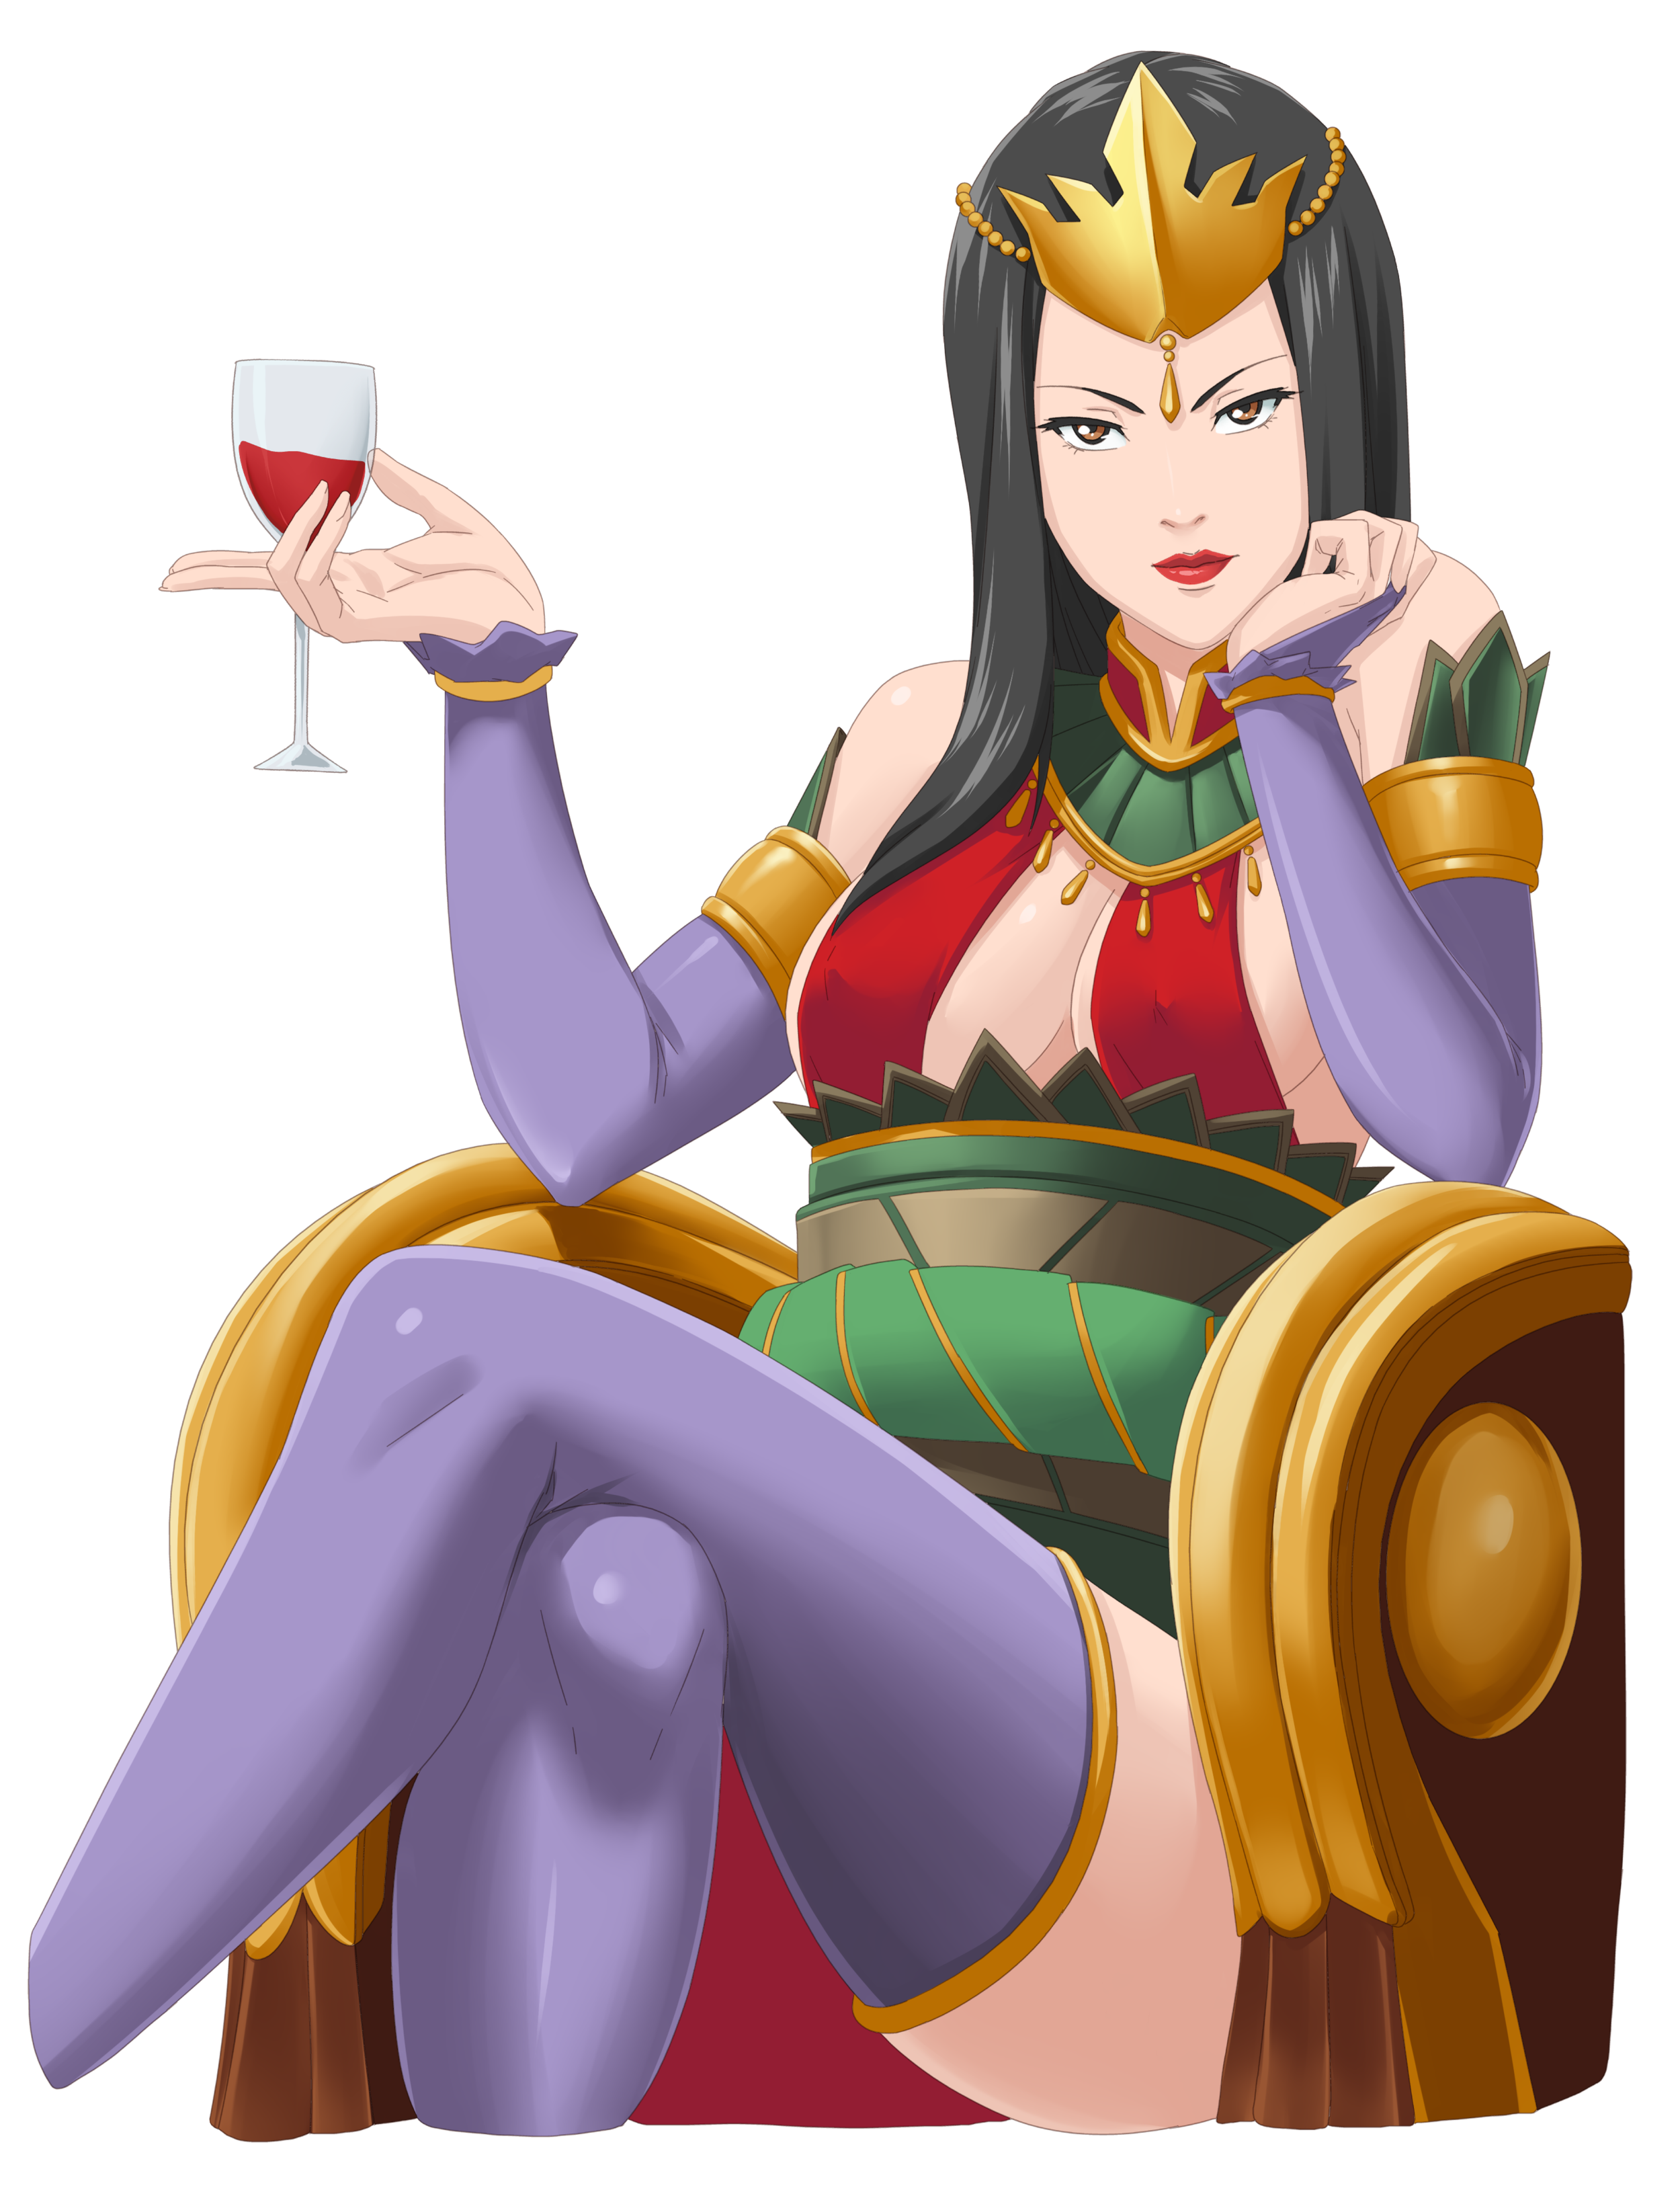 The Empress, Aya's mother and the absolute ruler of their people. She is loved as a living representation of Zhu tradition and feared for the swift and harsh punishment that tradition demands. For better or worse every action she makes is part of a legacy she will leave behind for Aya someday.